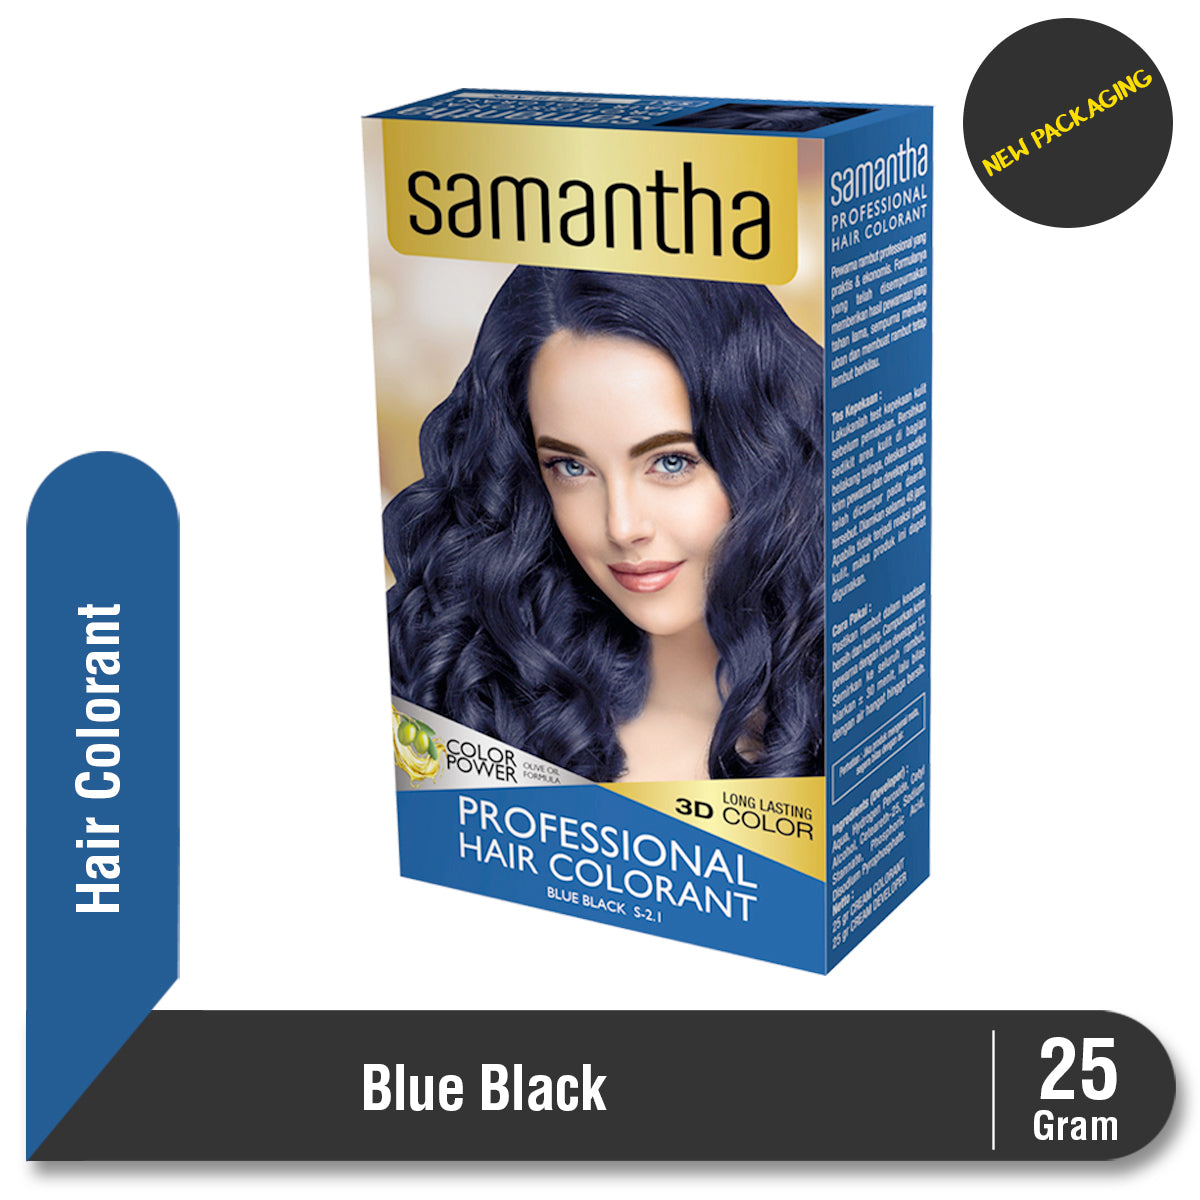 Samantha Professional Hair Colorant Blue Black 25gr